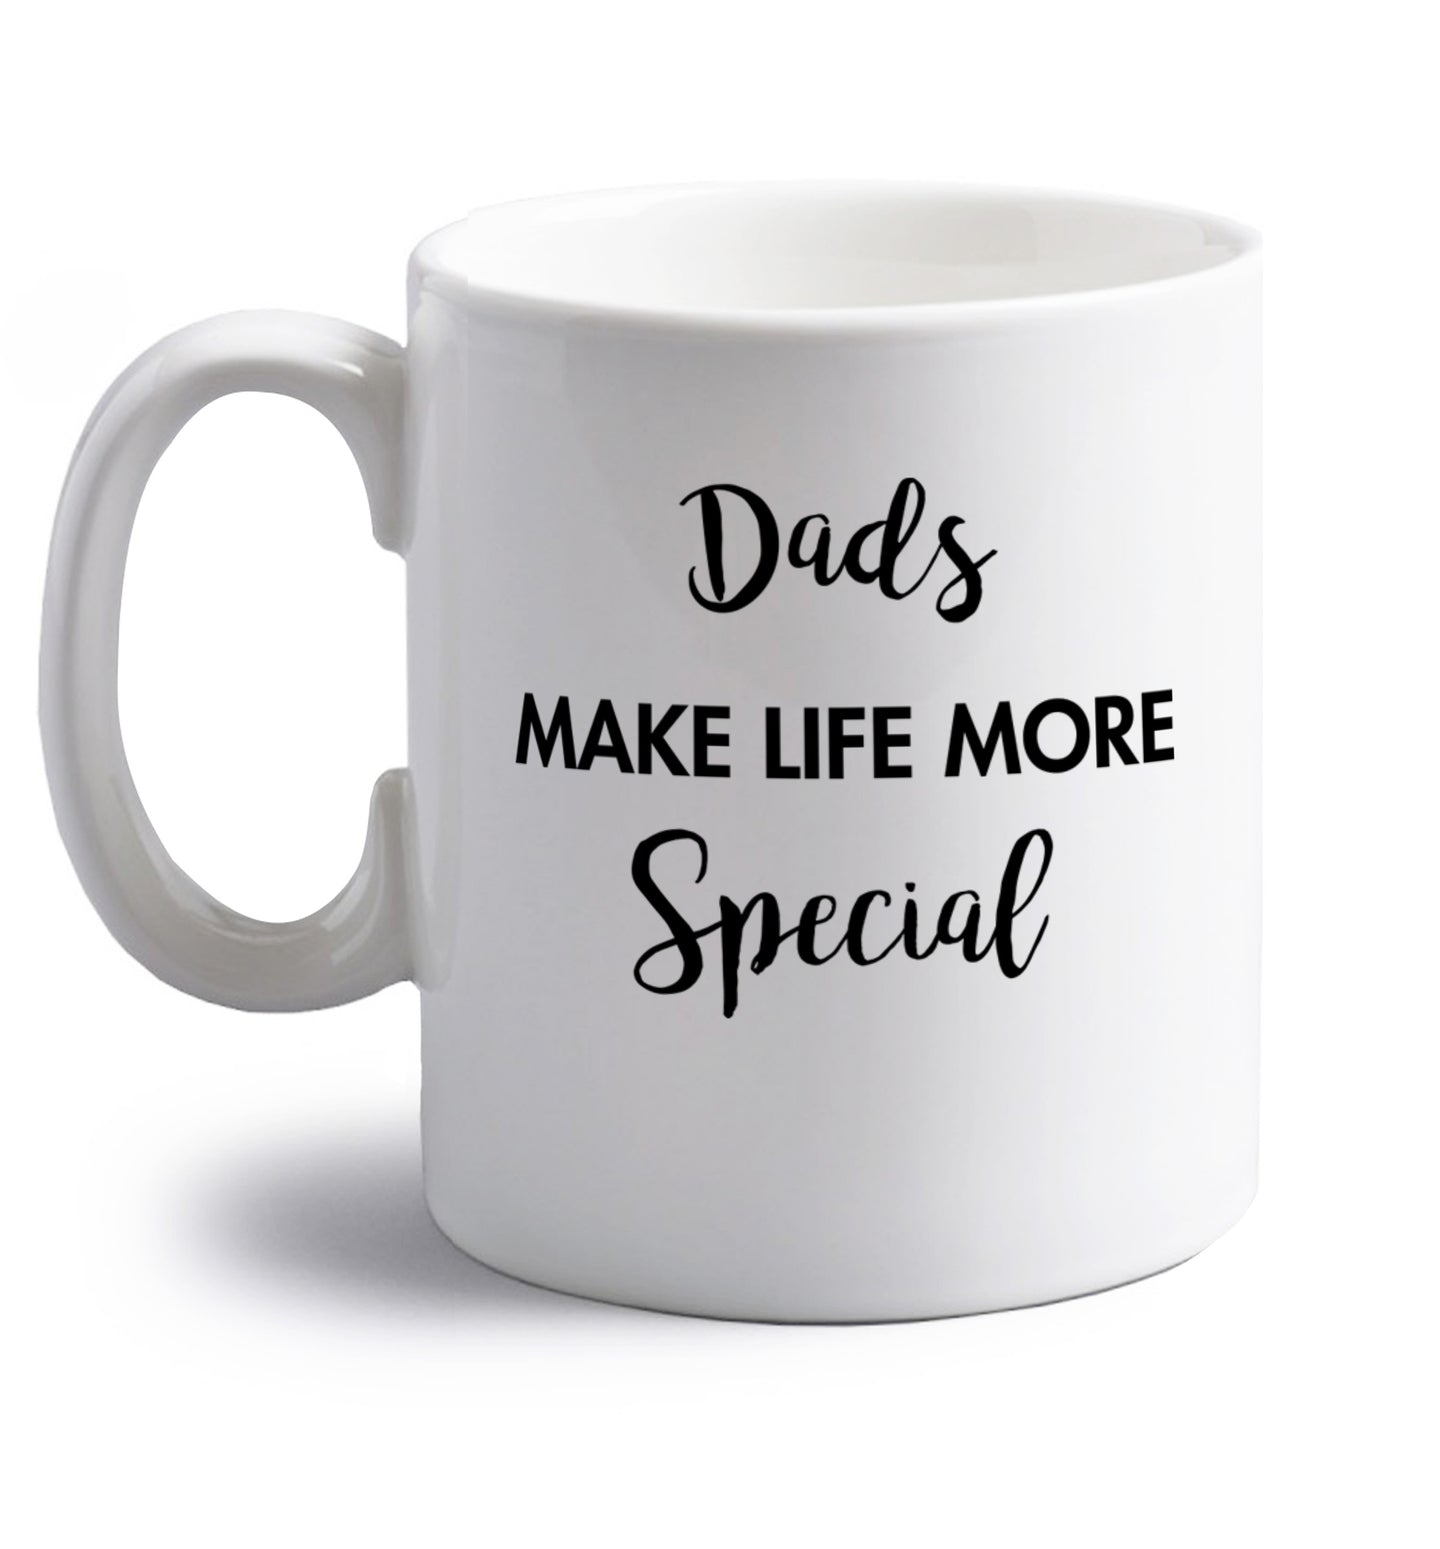 Dads make life more special right handed white ceramic mug